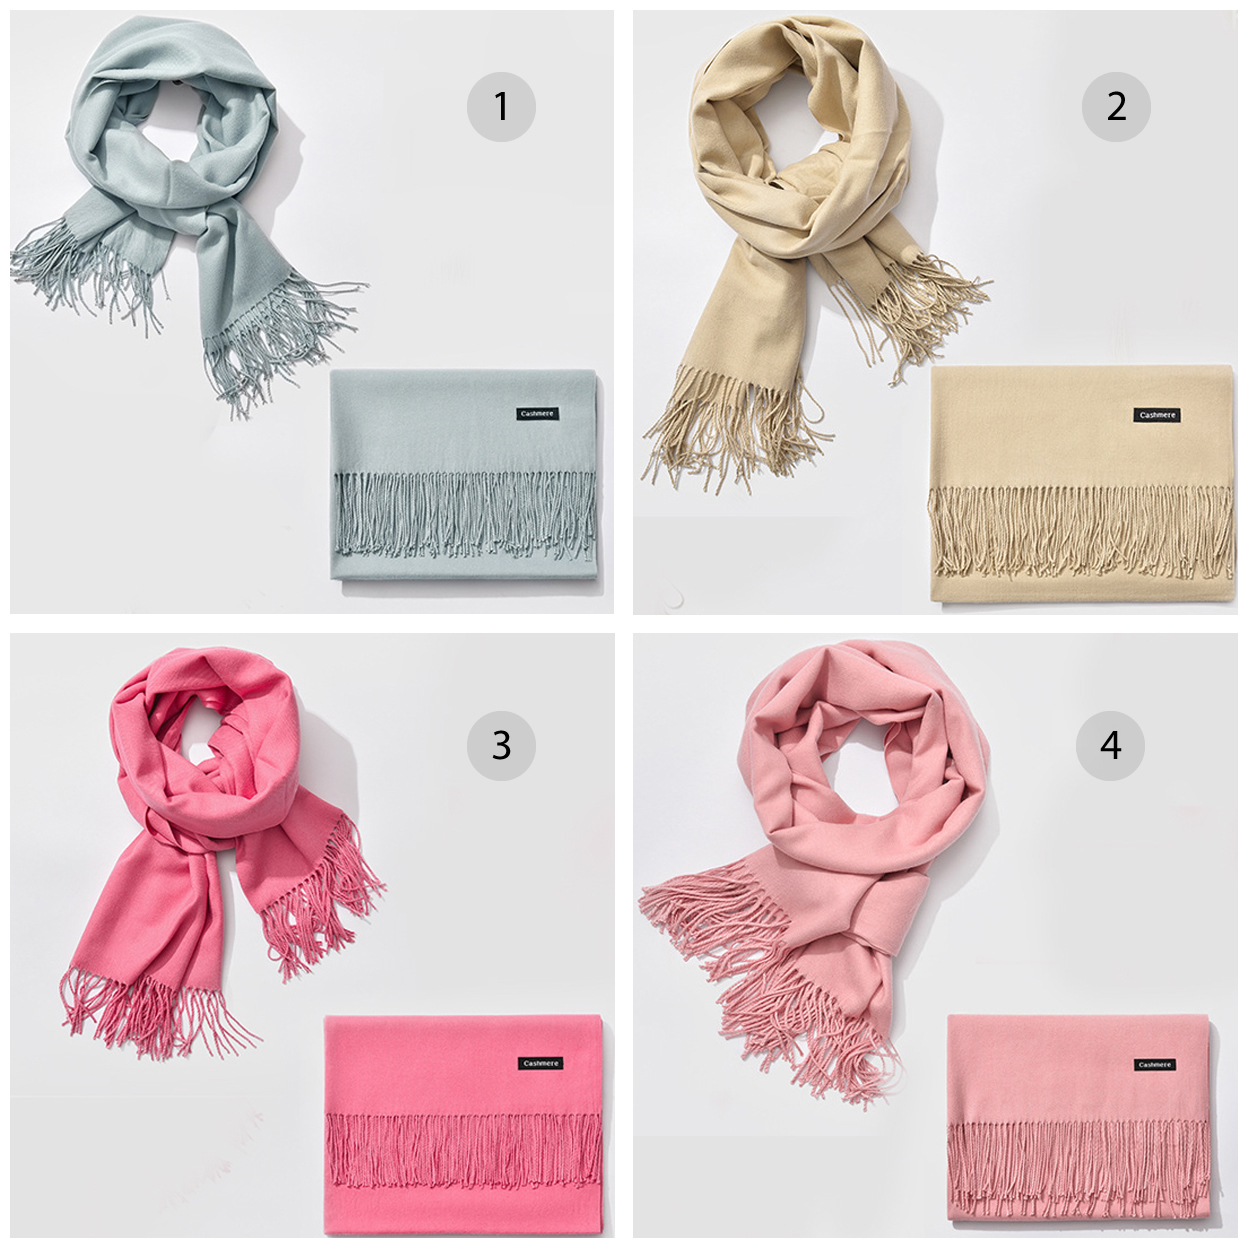 LaVish Cashmere Wool Scarf For Warmth And Elegance - 1 - Light Gray 5a13babb927b0c56ac7c4db8